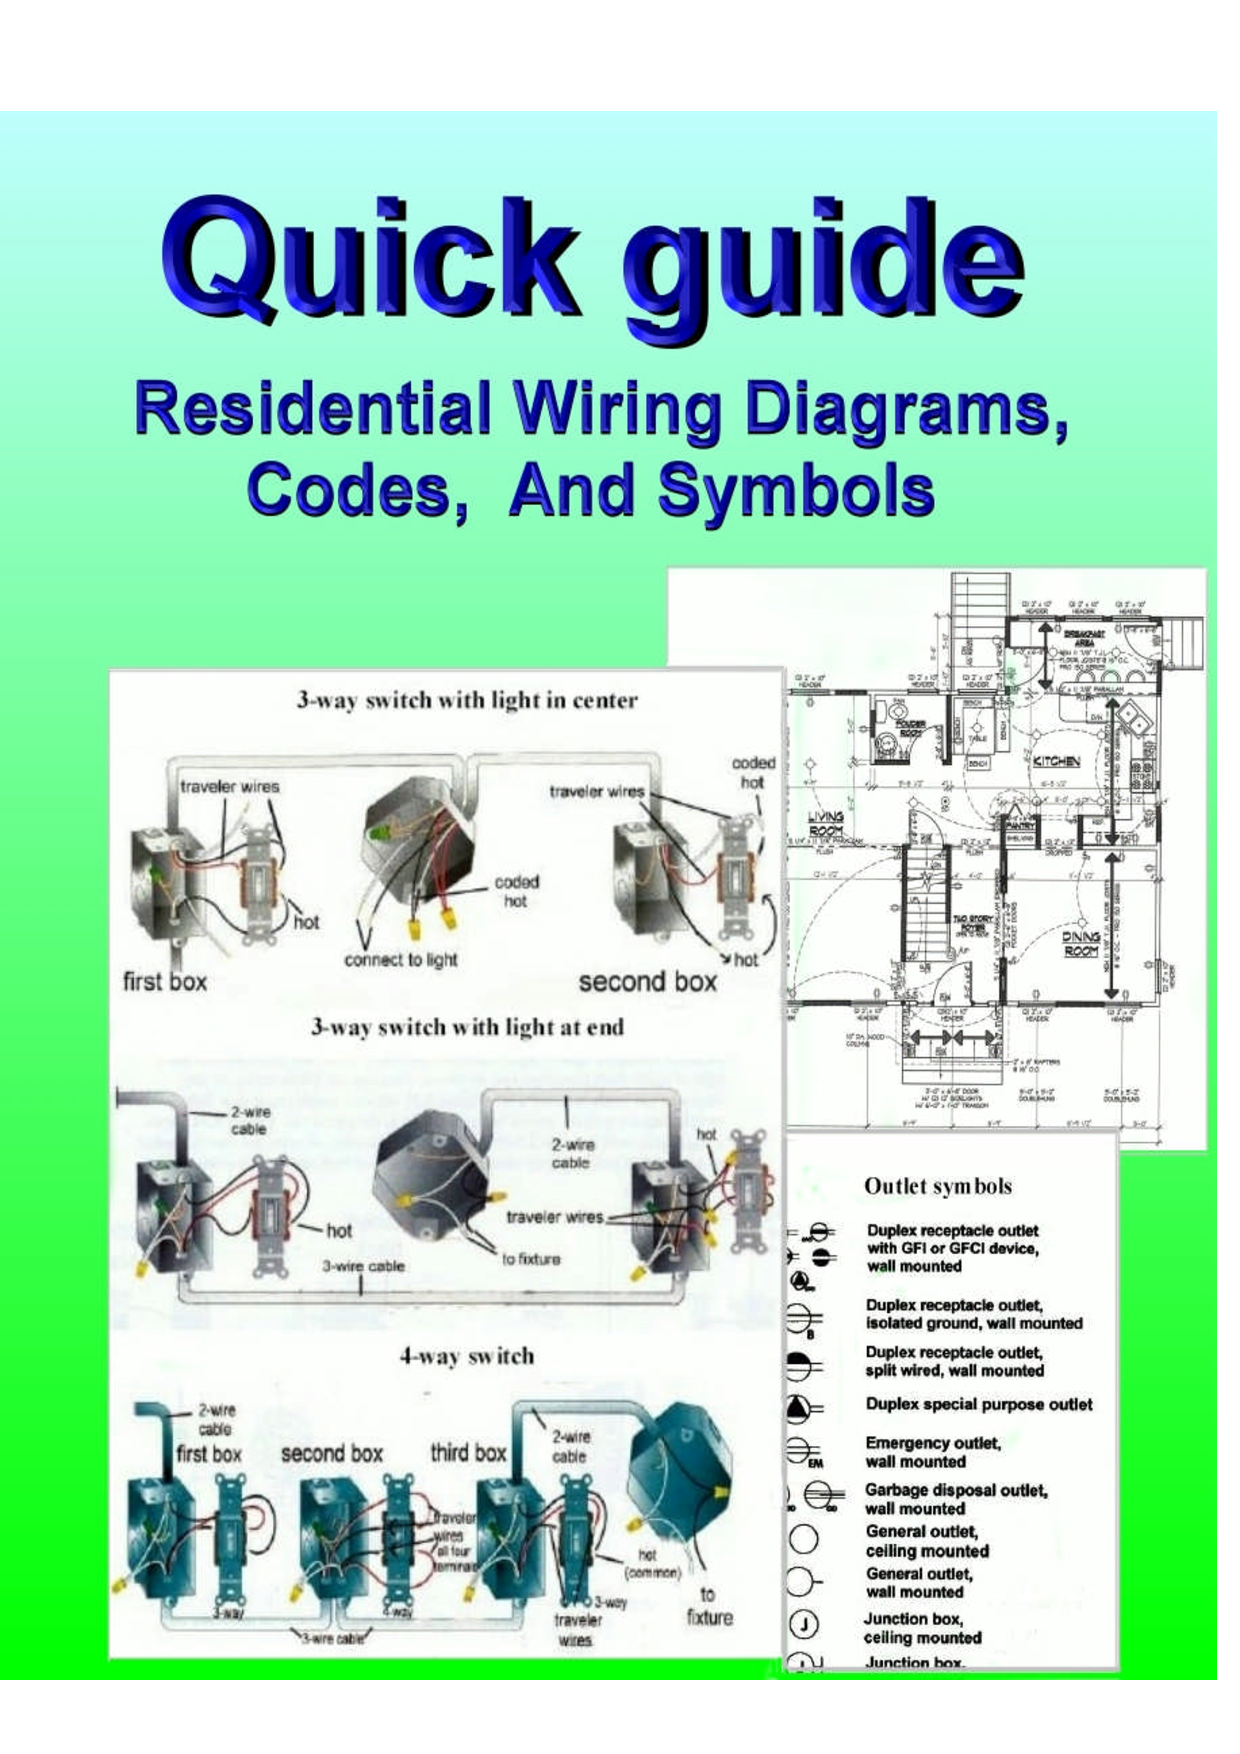 Swell Residential Electric Wiring Diagrams Wiring Diagram Wiring Cloud Licukaidewilluminateatxorg